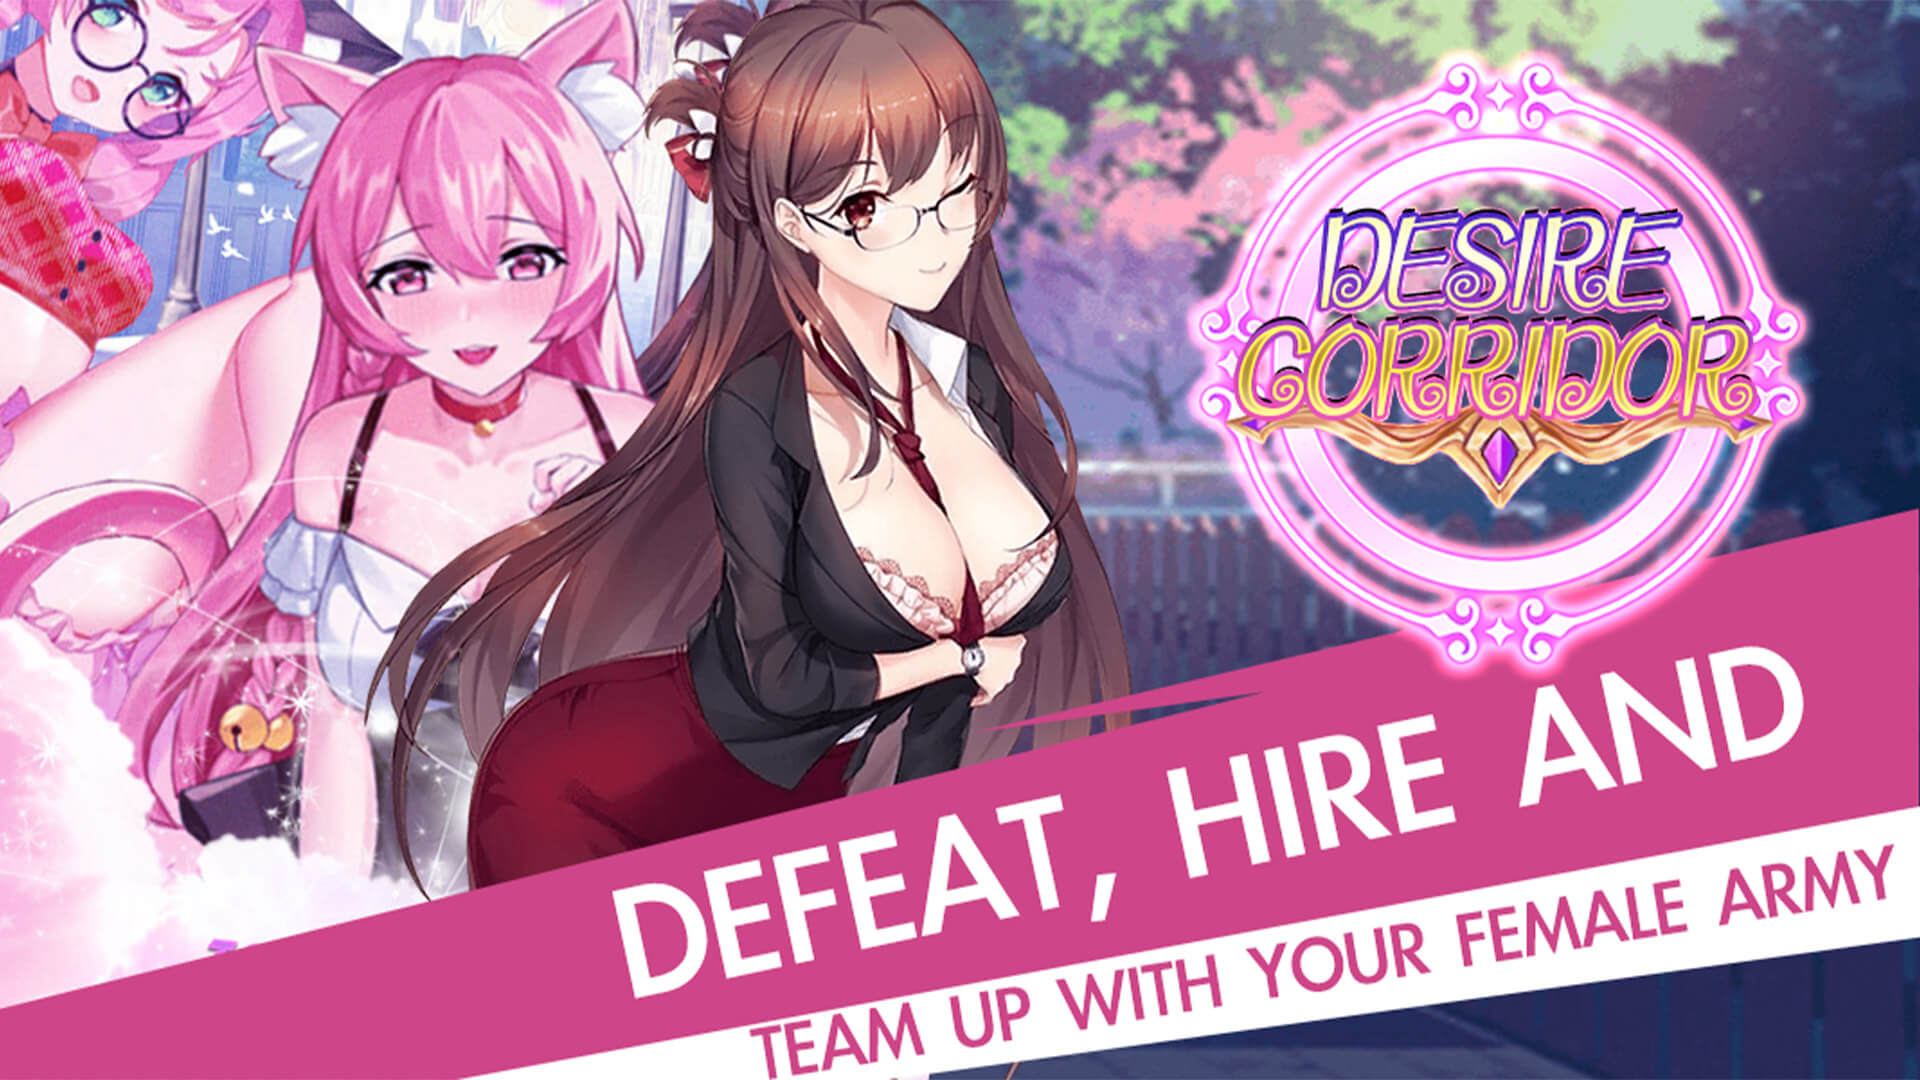 desire-corridor-hentai-android-sex-game